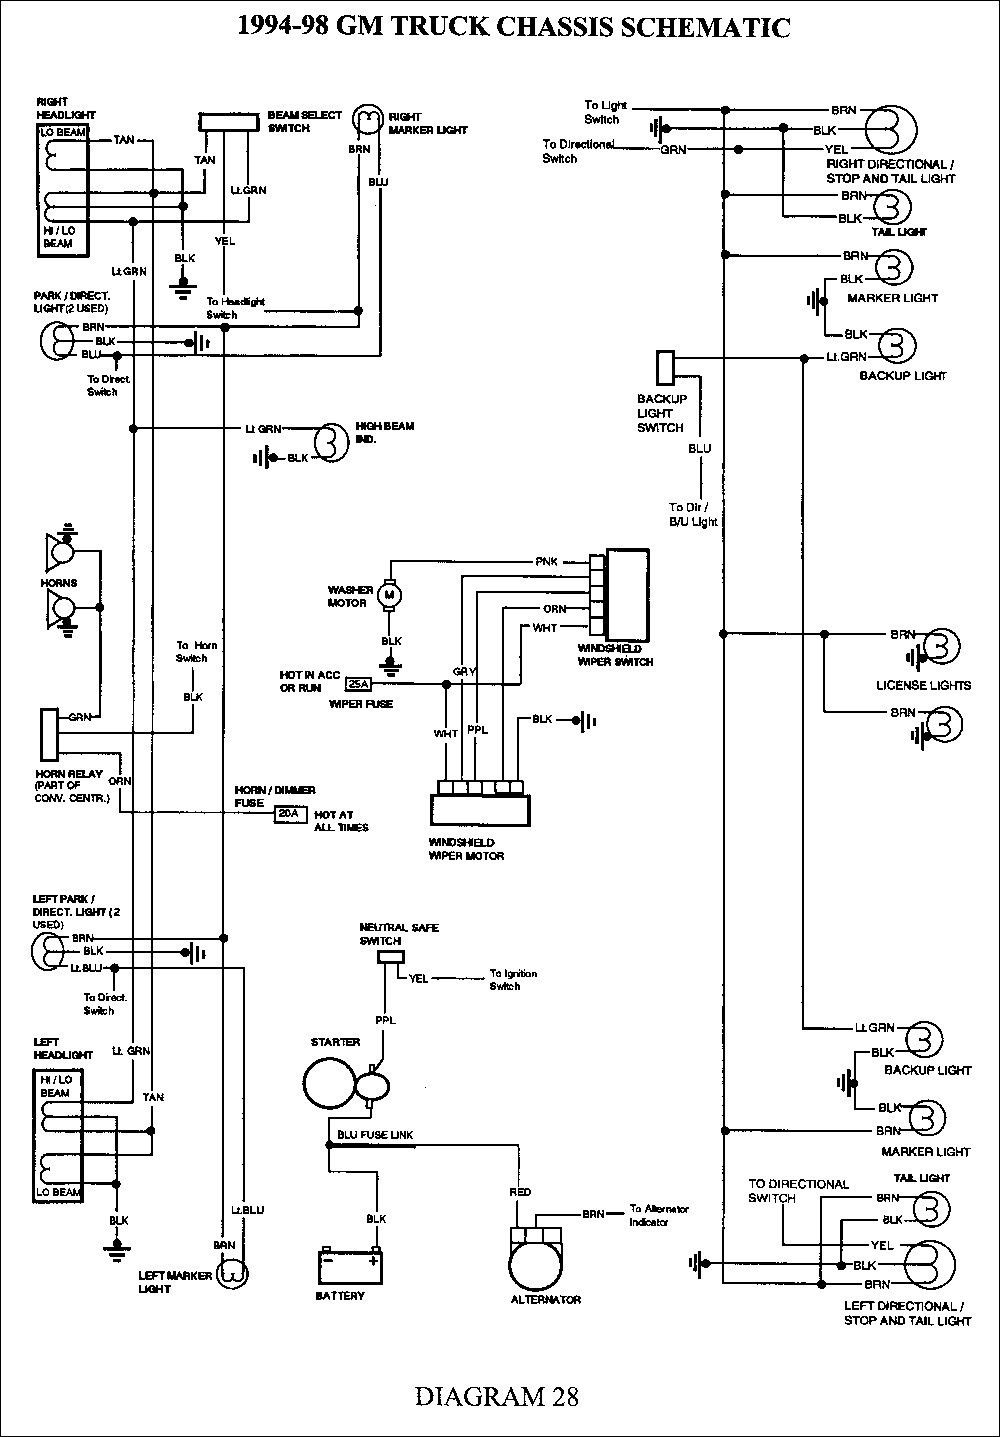 Taillitesdiagram99f350 Inspirational In 2020 2004 Chevy Silverado Chevy Silverado Trailer Wiring Diagram